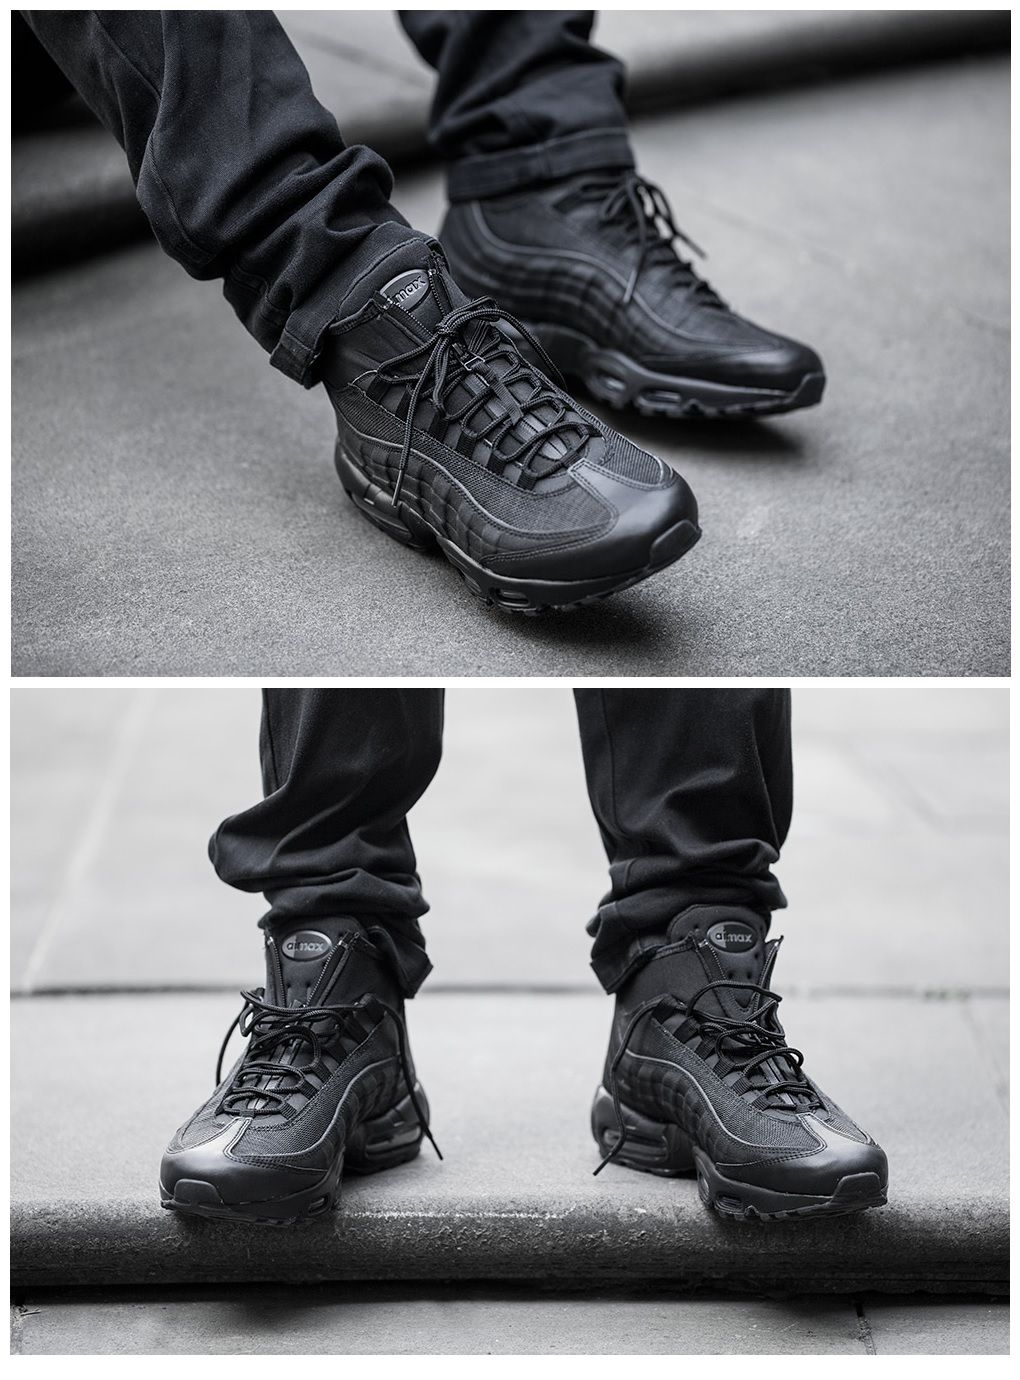 hot sale online 756c4 a9e4f Nike Air Max 95 Sneakerboot  Blackout